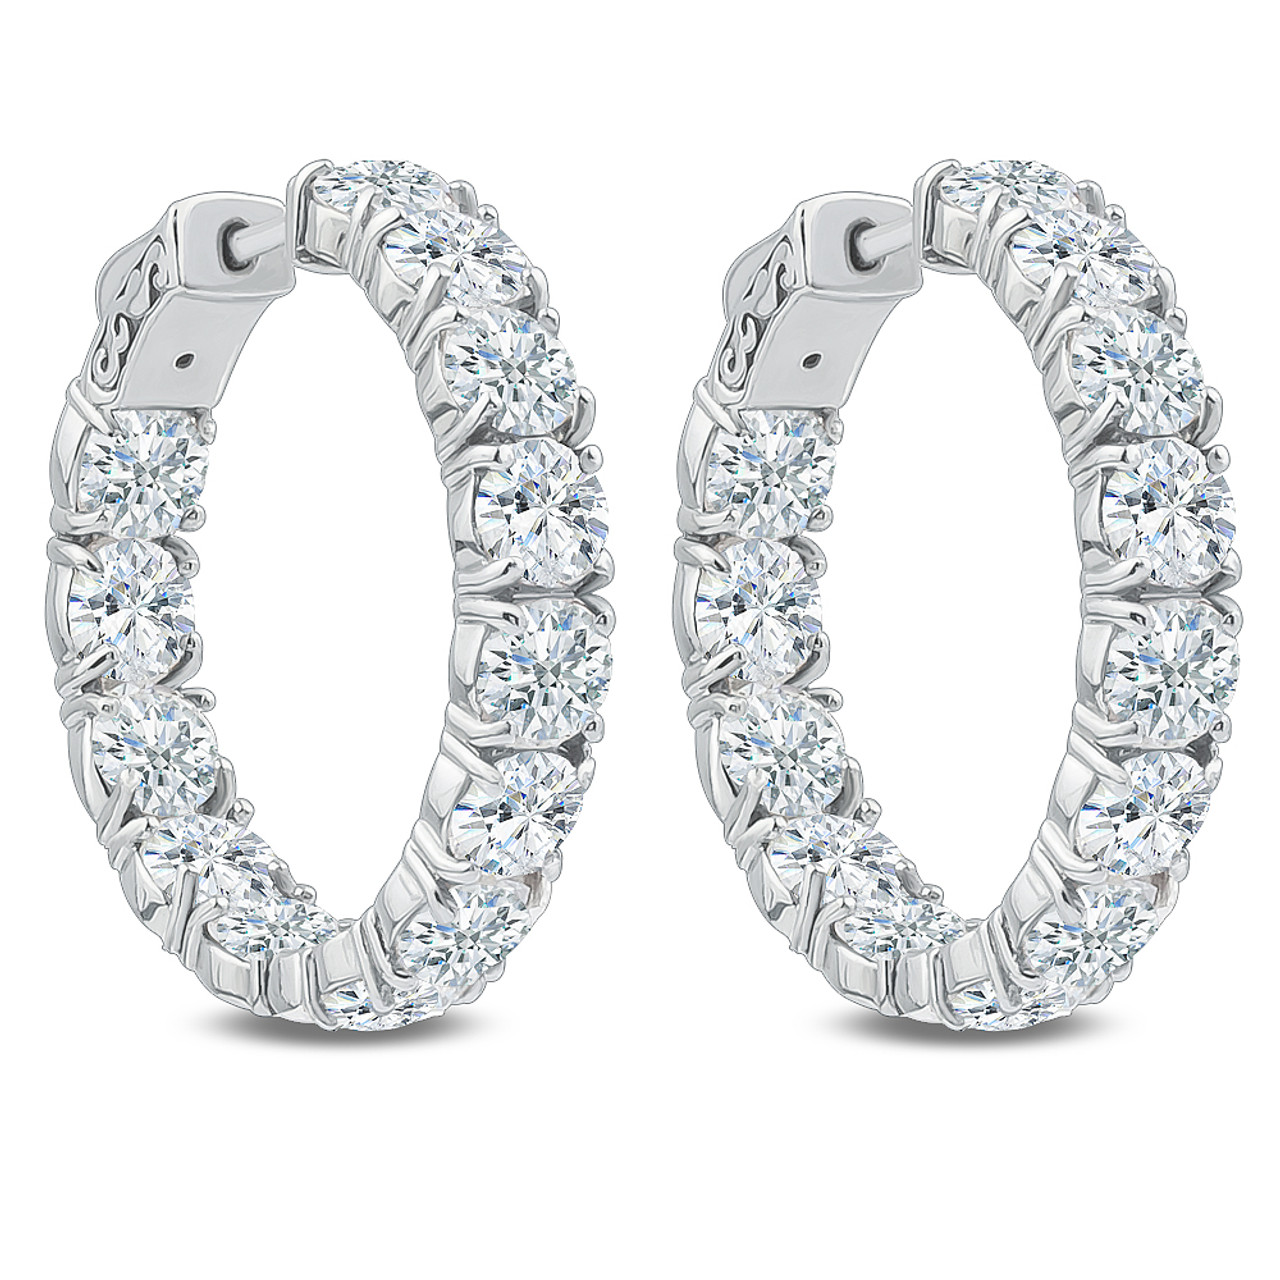 Bellamy Vault Lock Inside Out Rounds Cz Earring Hoops 13 0 Carats Total